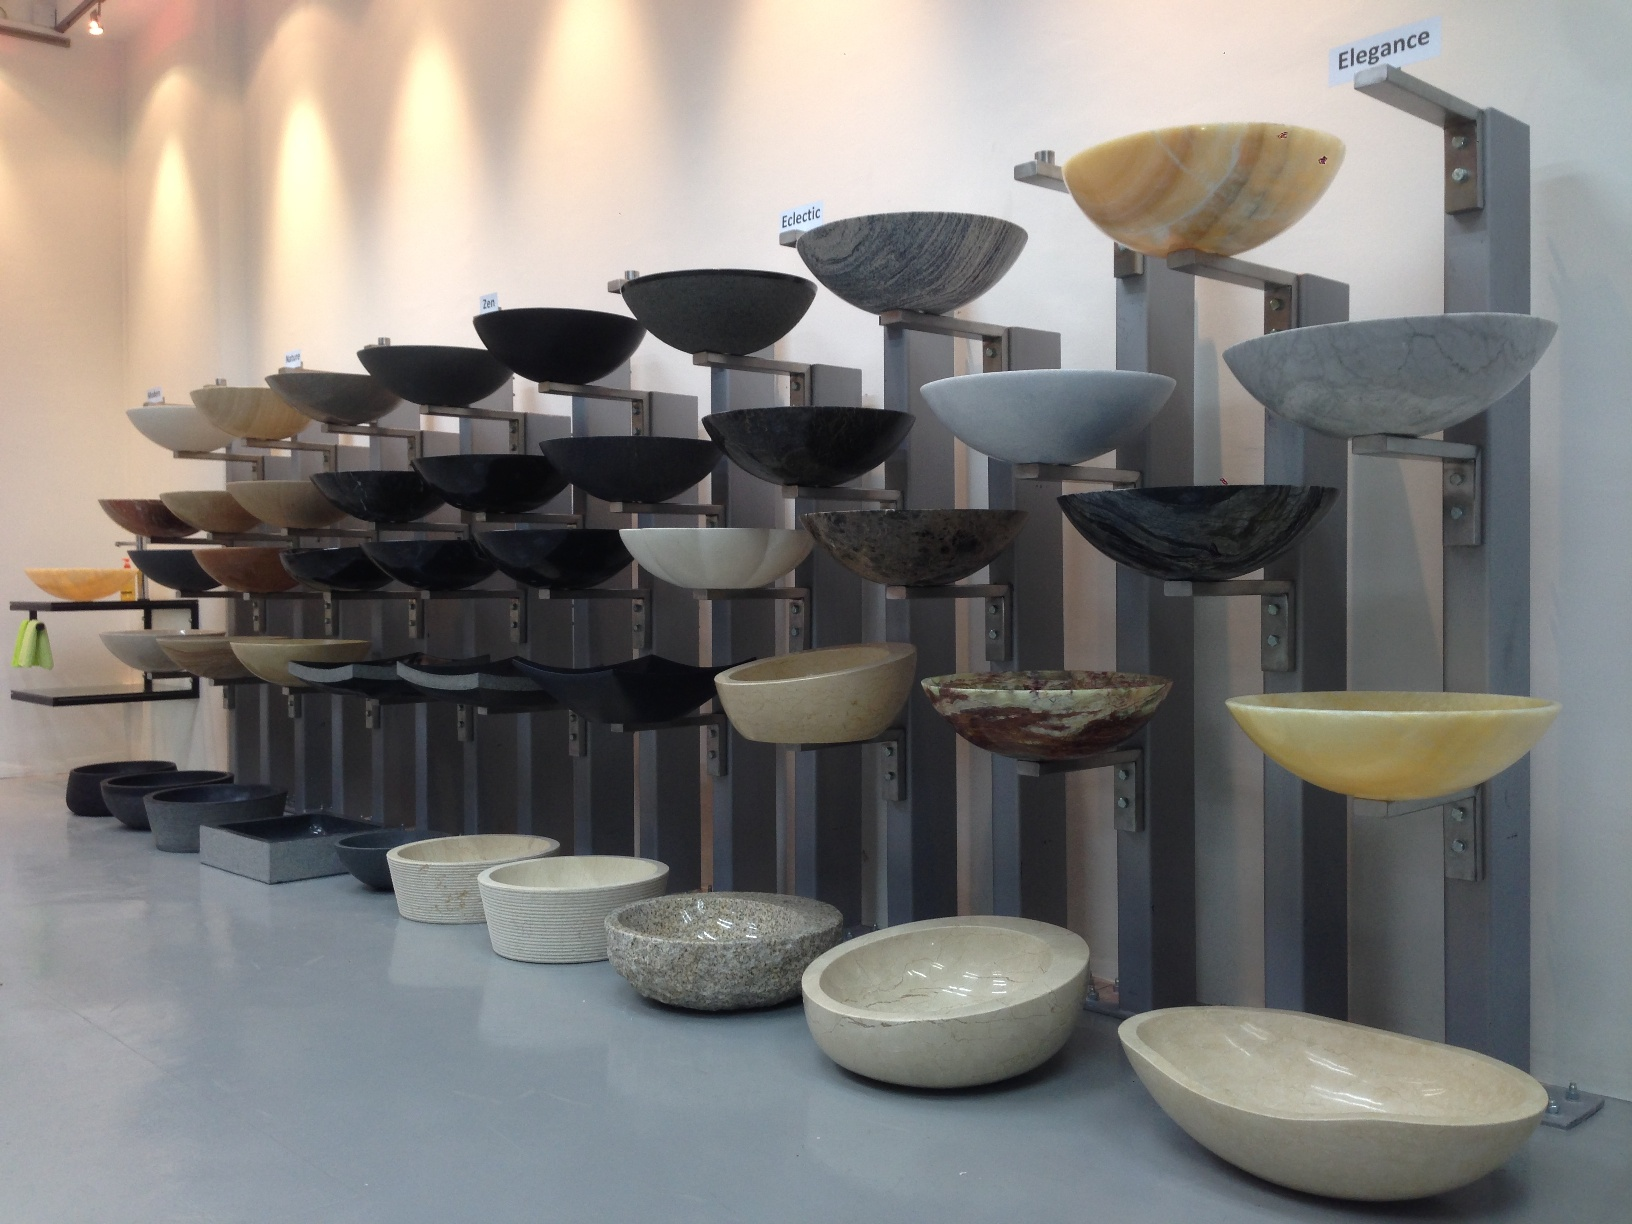 Urbane Basin Gallery Officially Opens Import Export Trading Granite Marble Ceramics